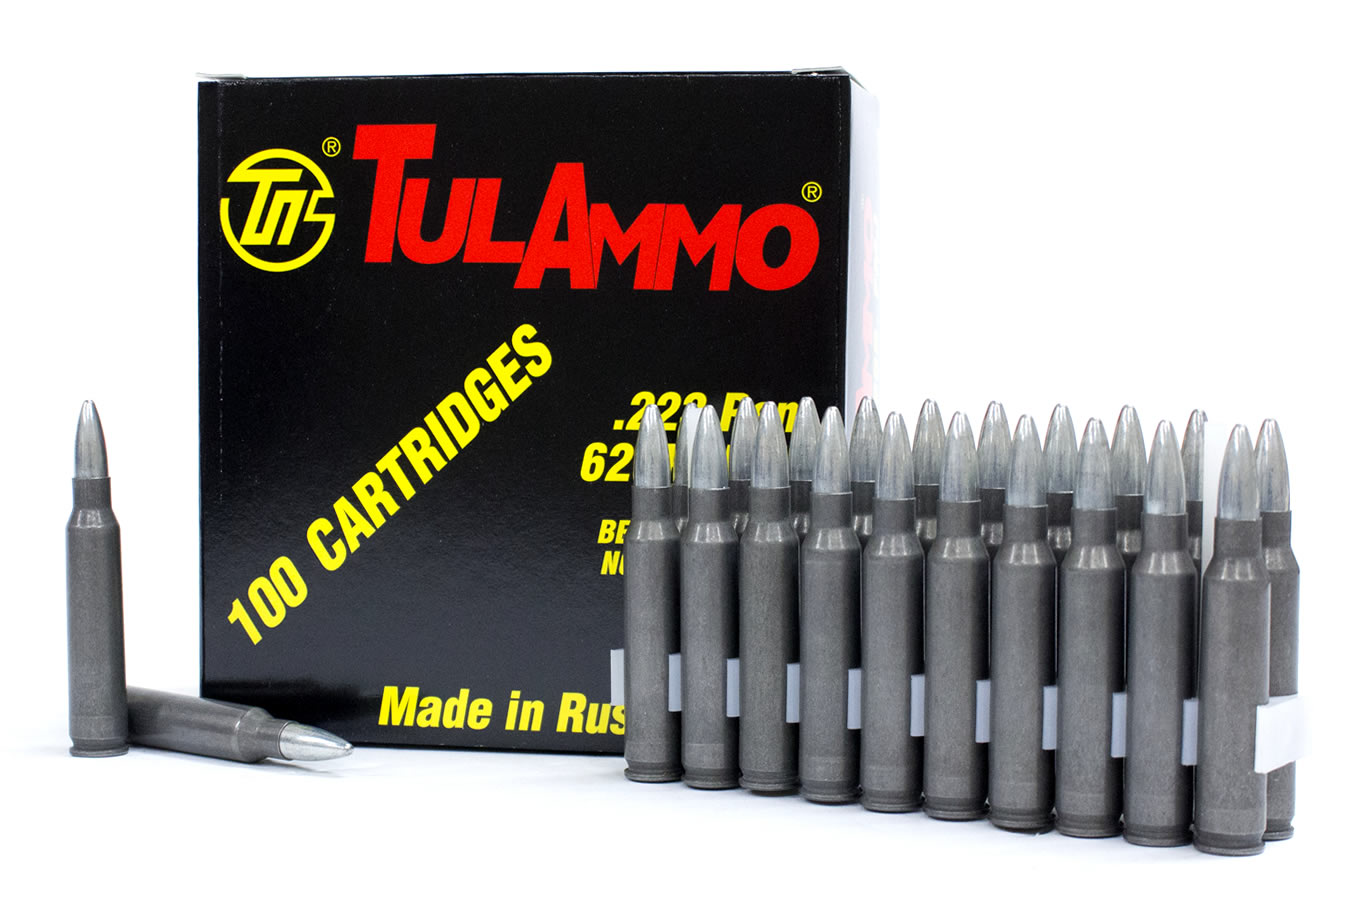 TULA AMMO 223 REM 62 GR FMJ STEEL CASE 100/BOX